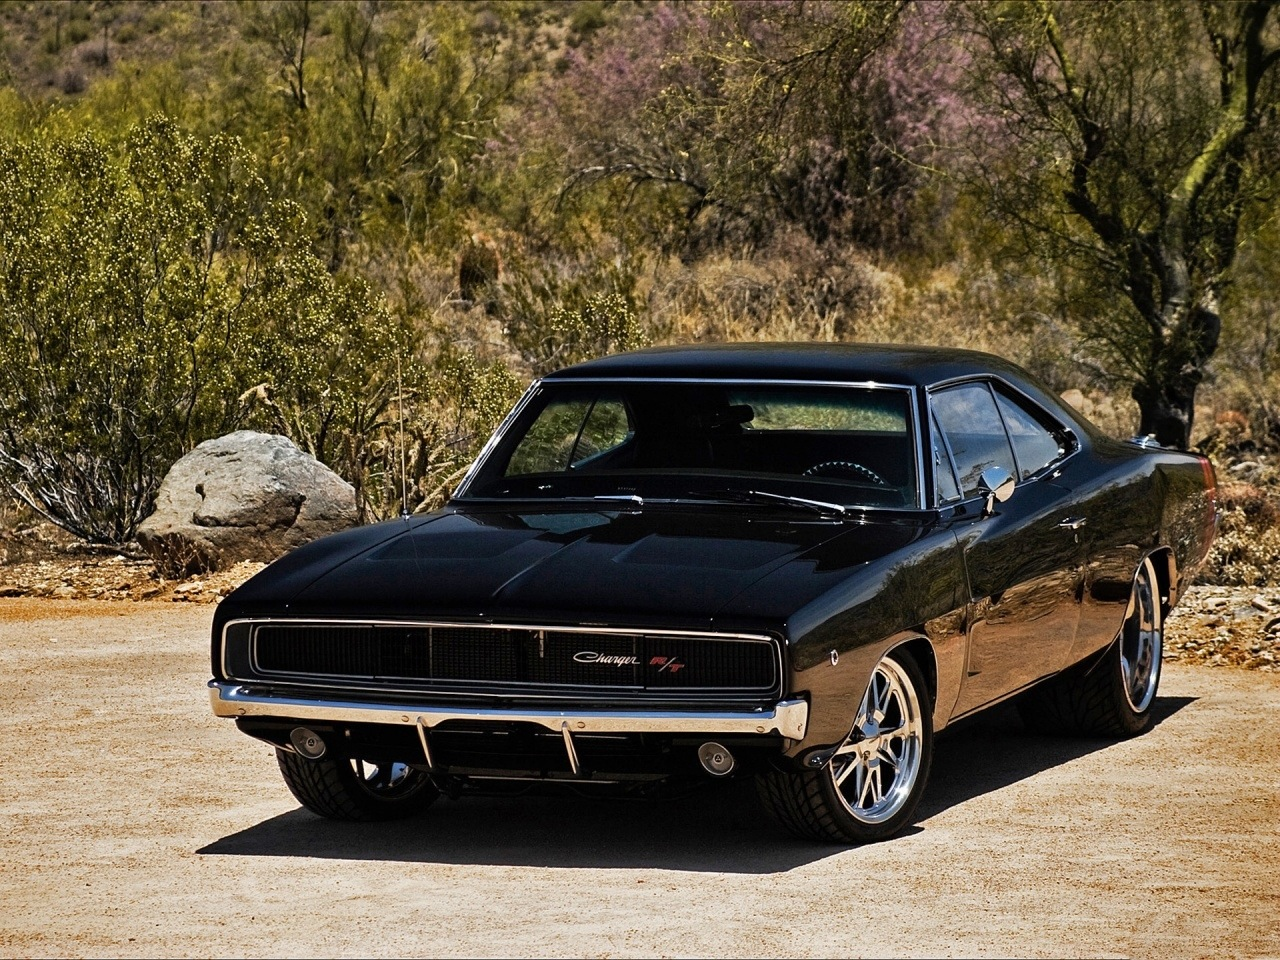 Best Muscle Cars American Muscle Classic SS Camaro Charger Nova 1280x960